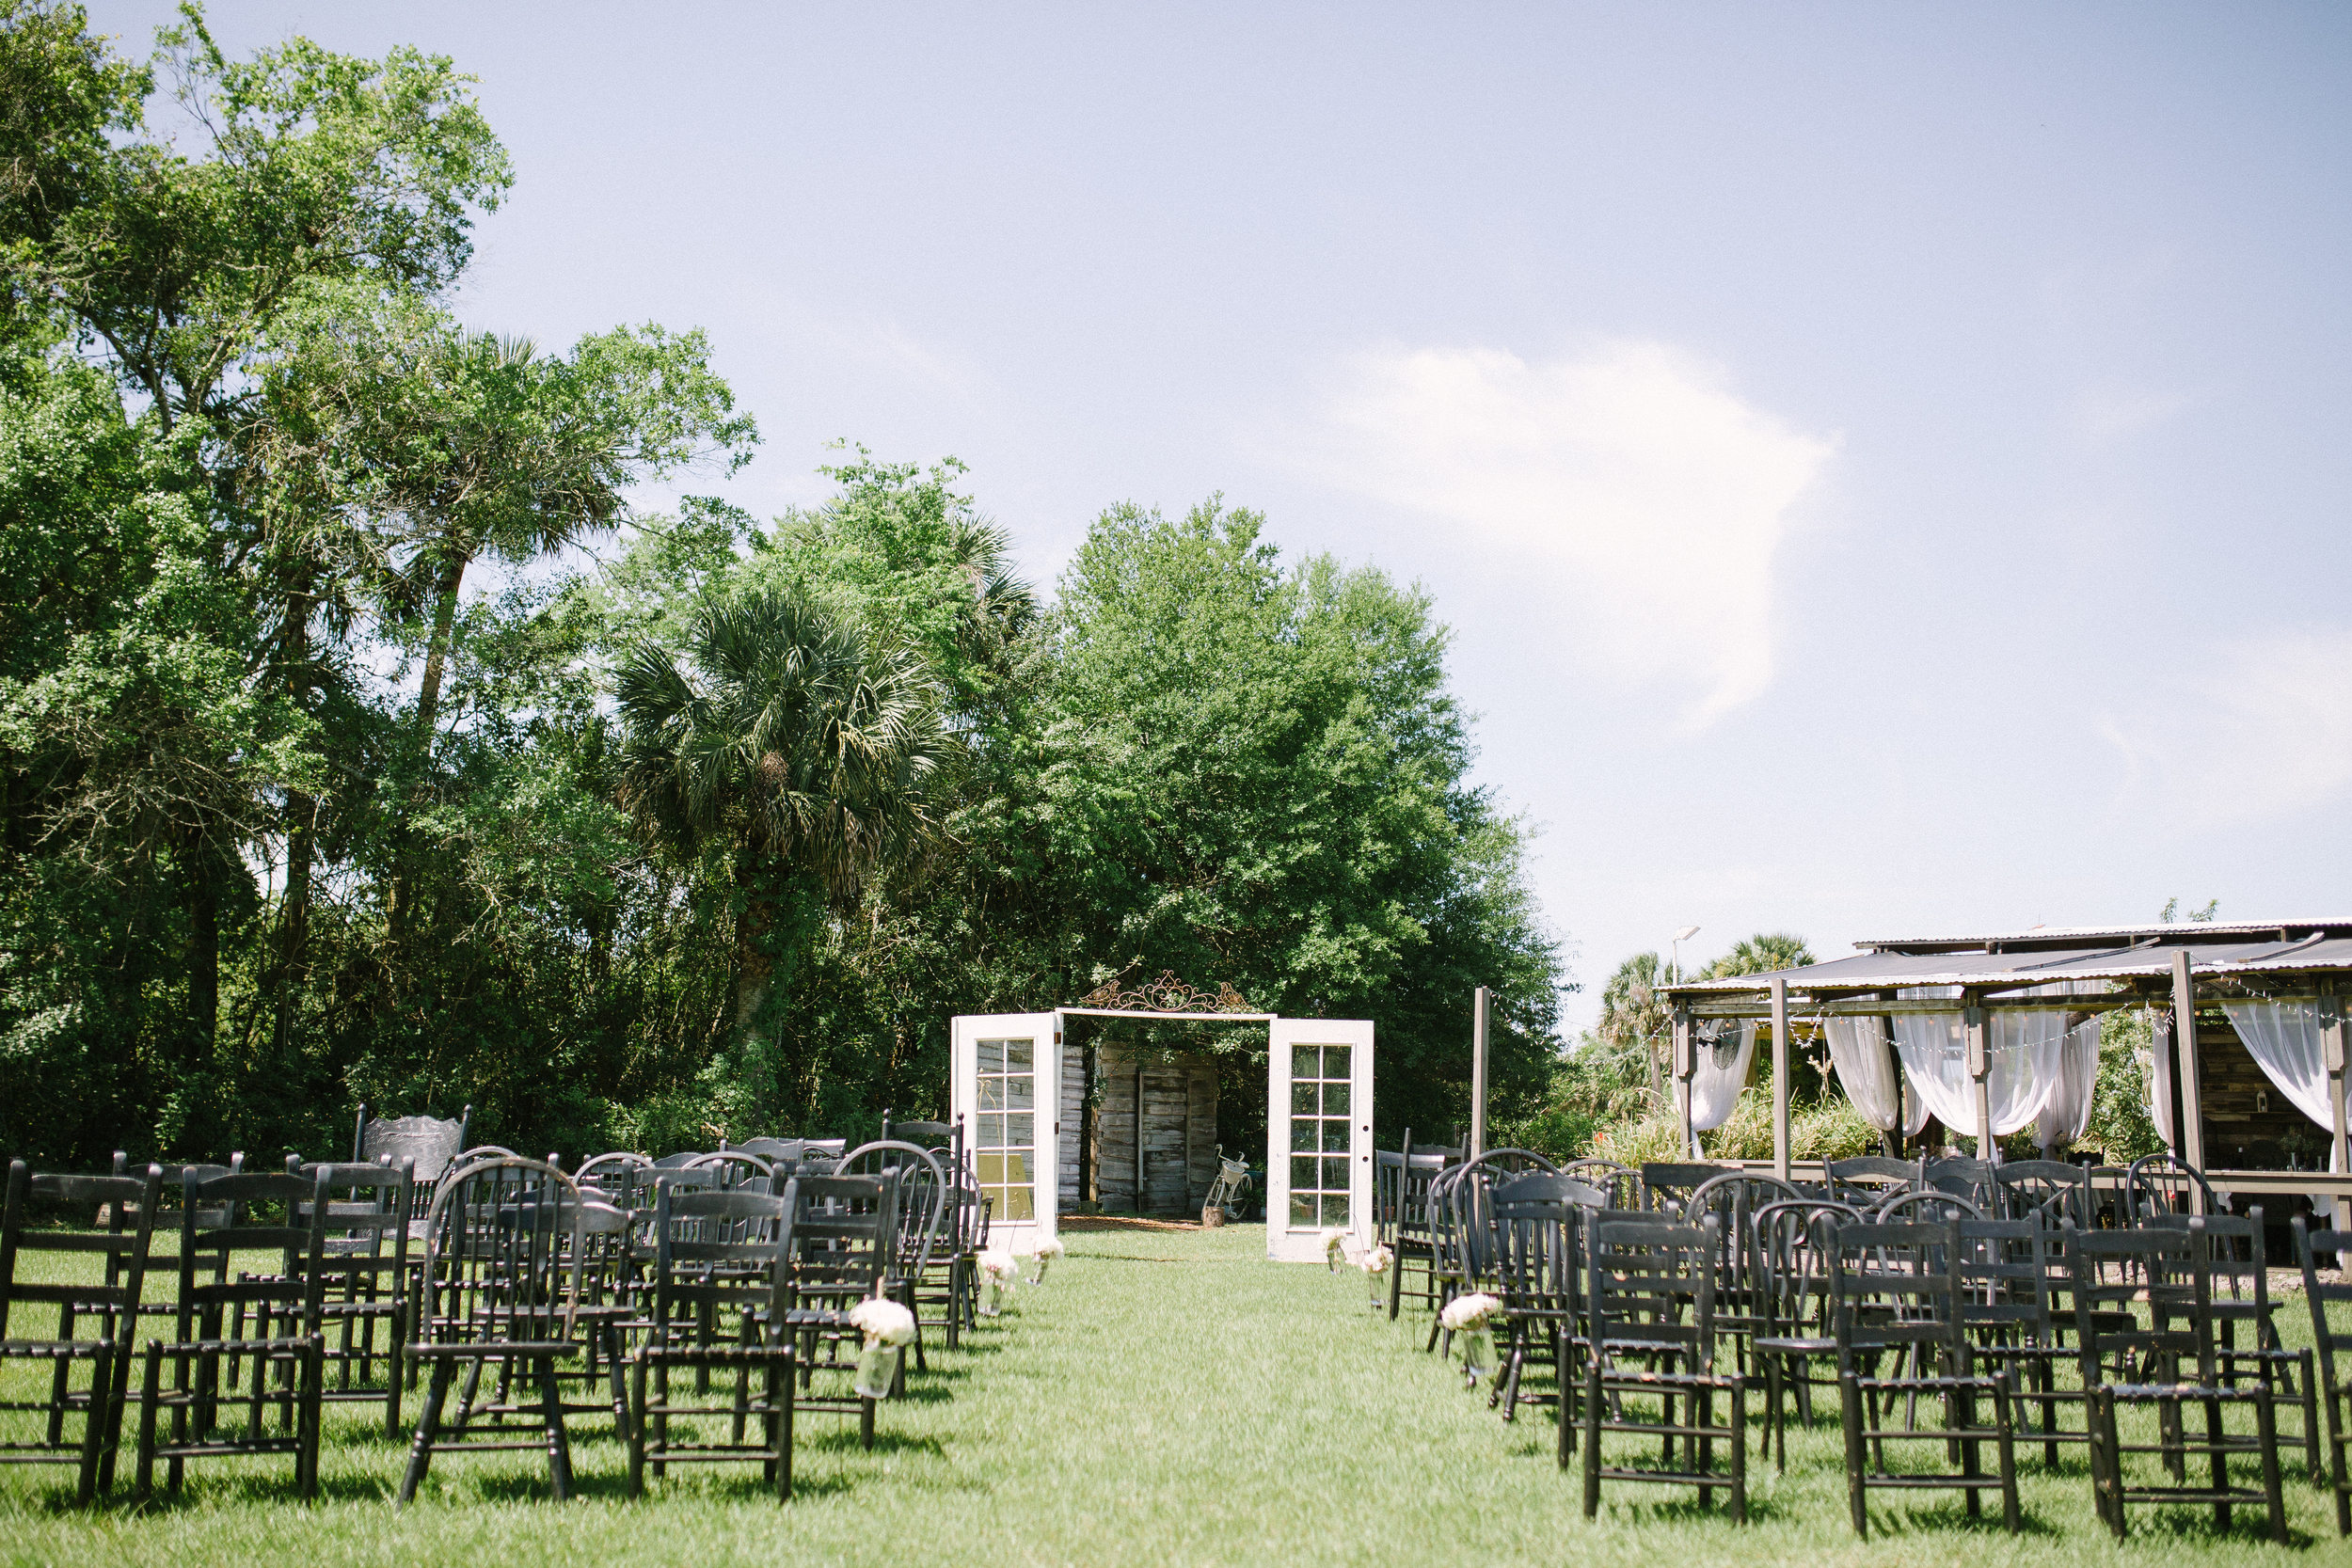 Loved this country setting with the old french doors and mismatched farm chairs!